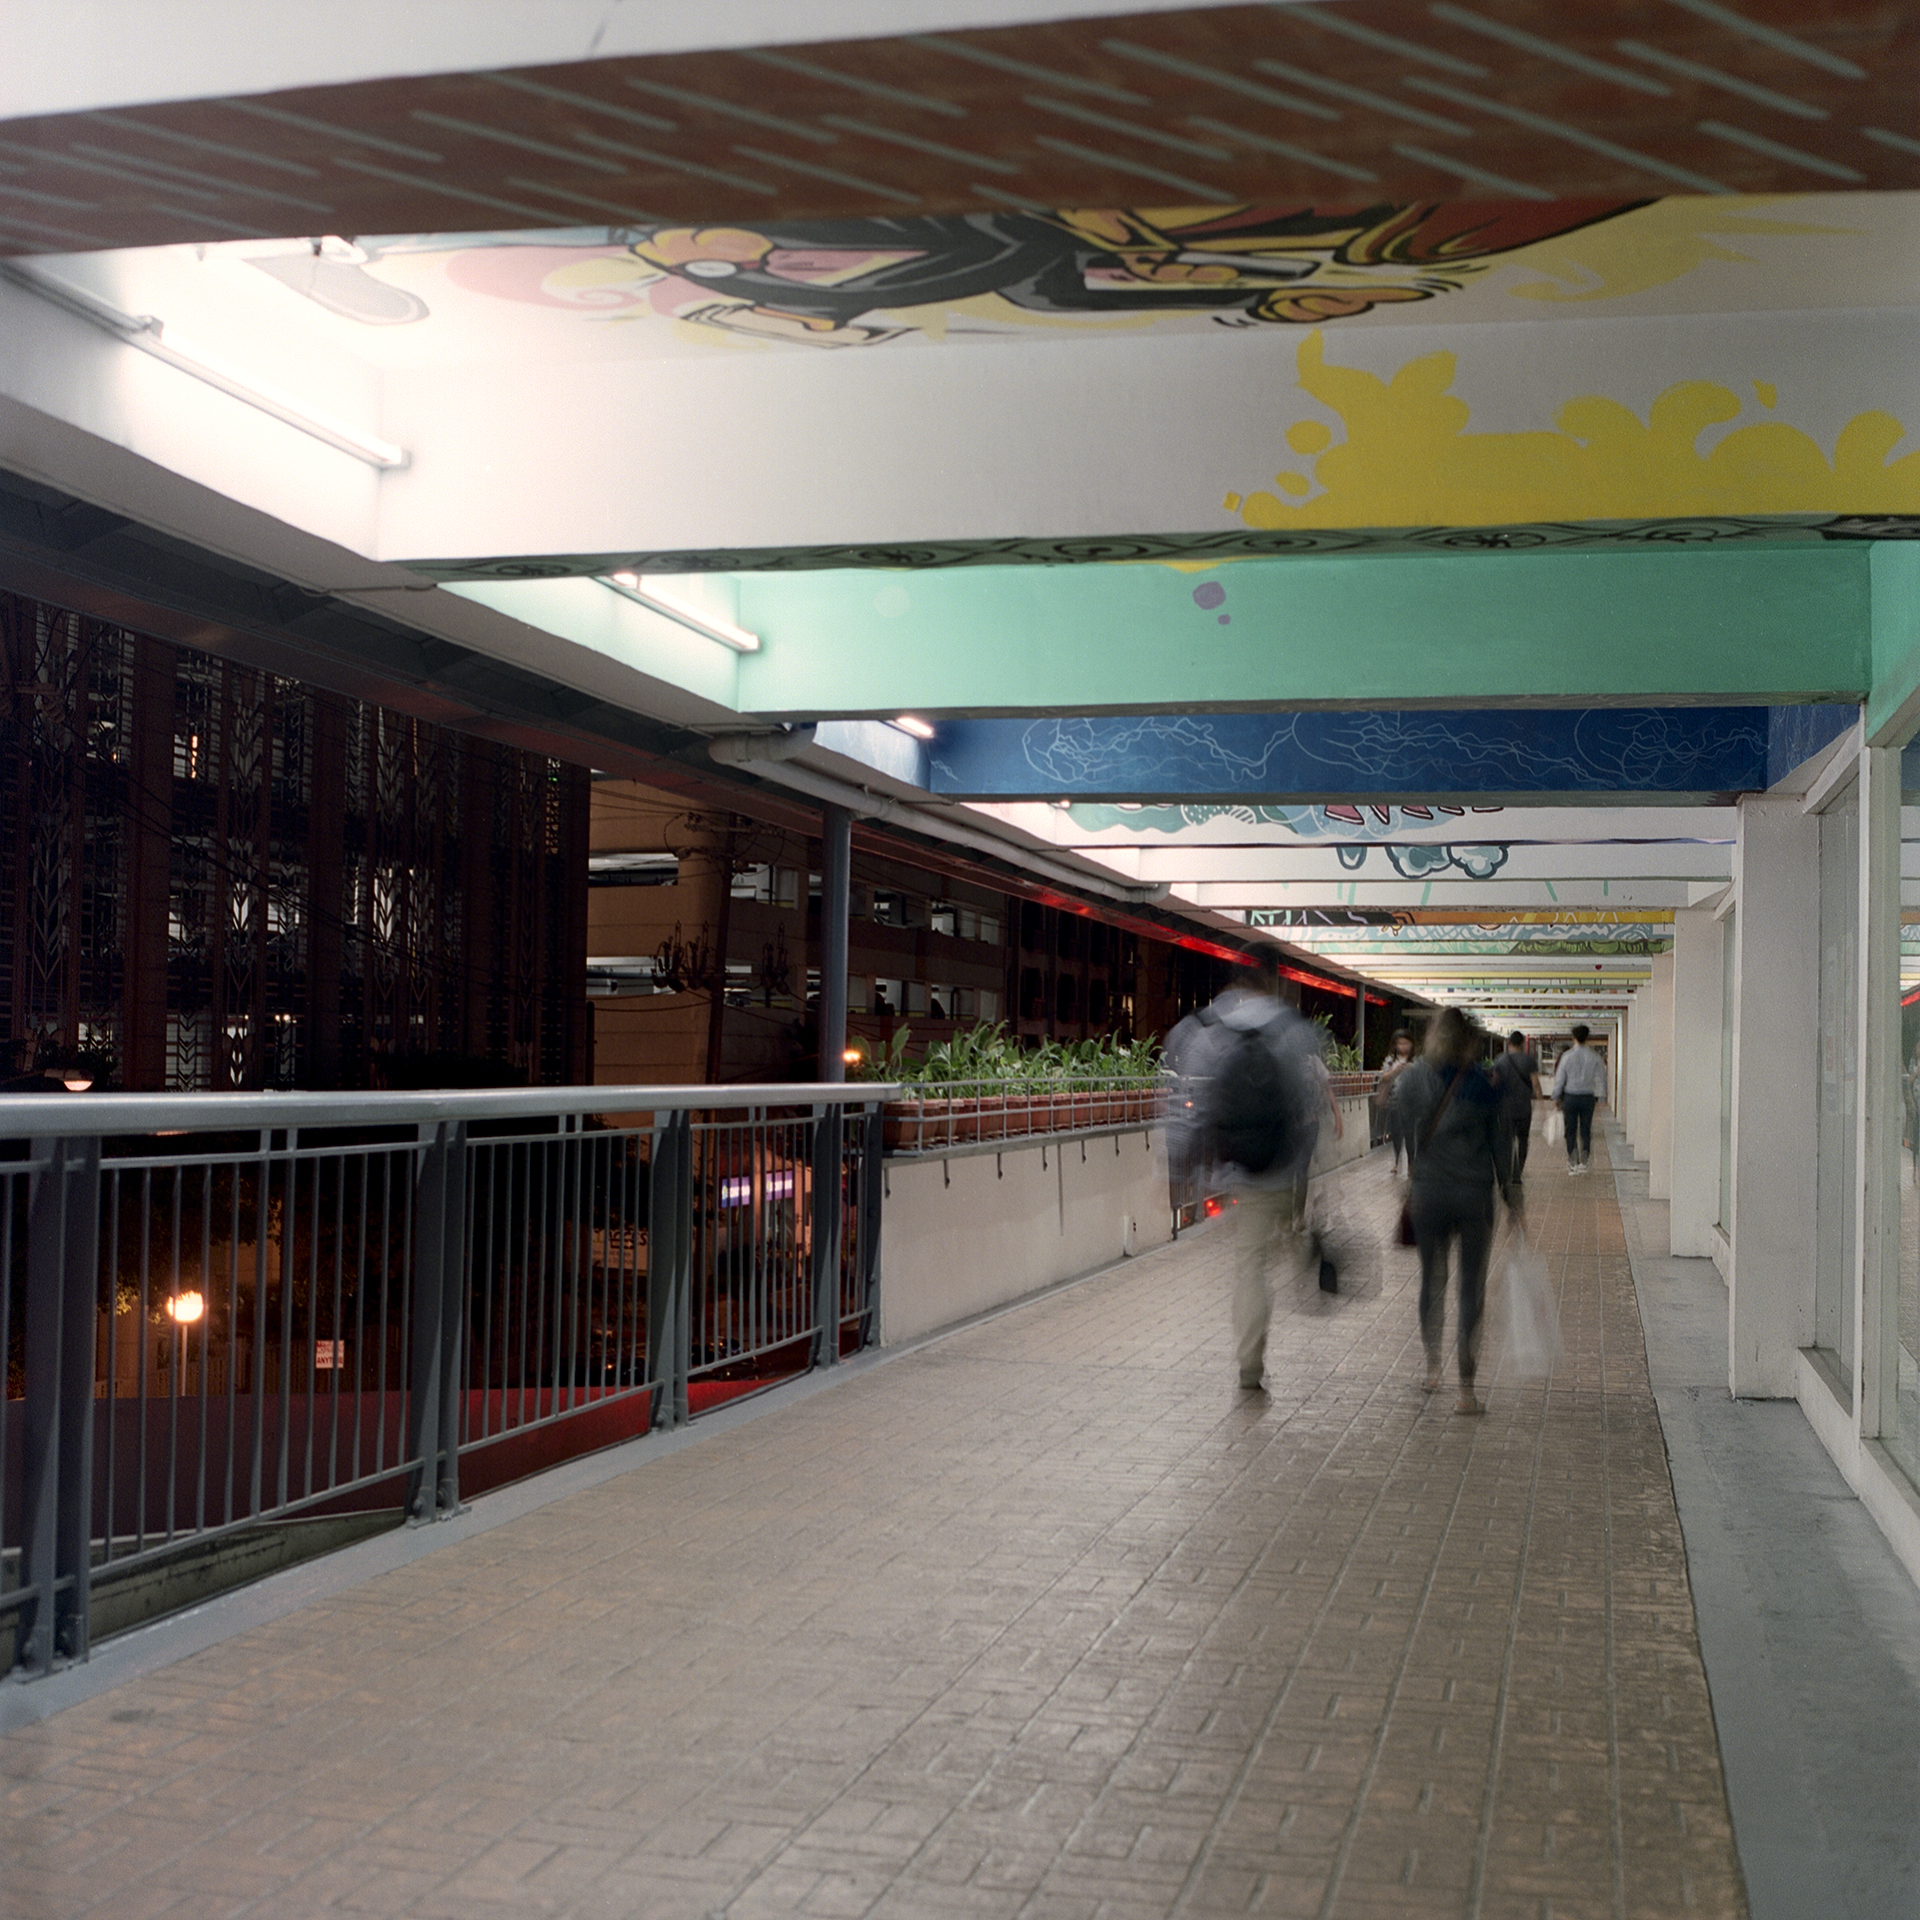 A pedestrian bridge going to the mall in Makati that has art painted by different artists all across the ceiling of the walkway